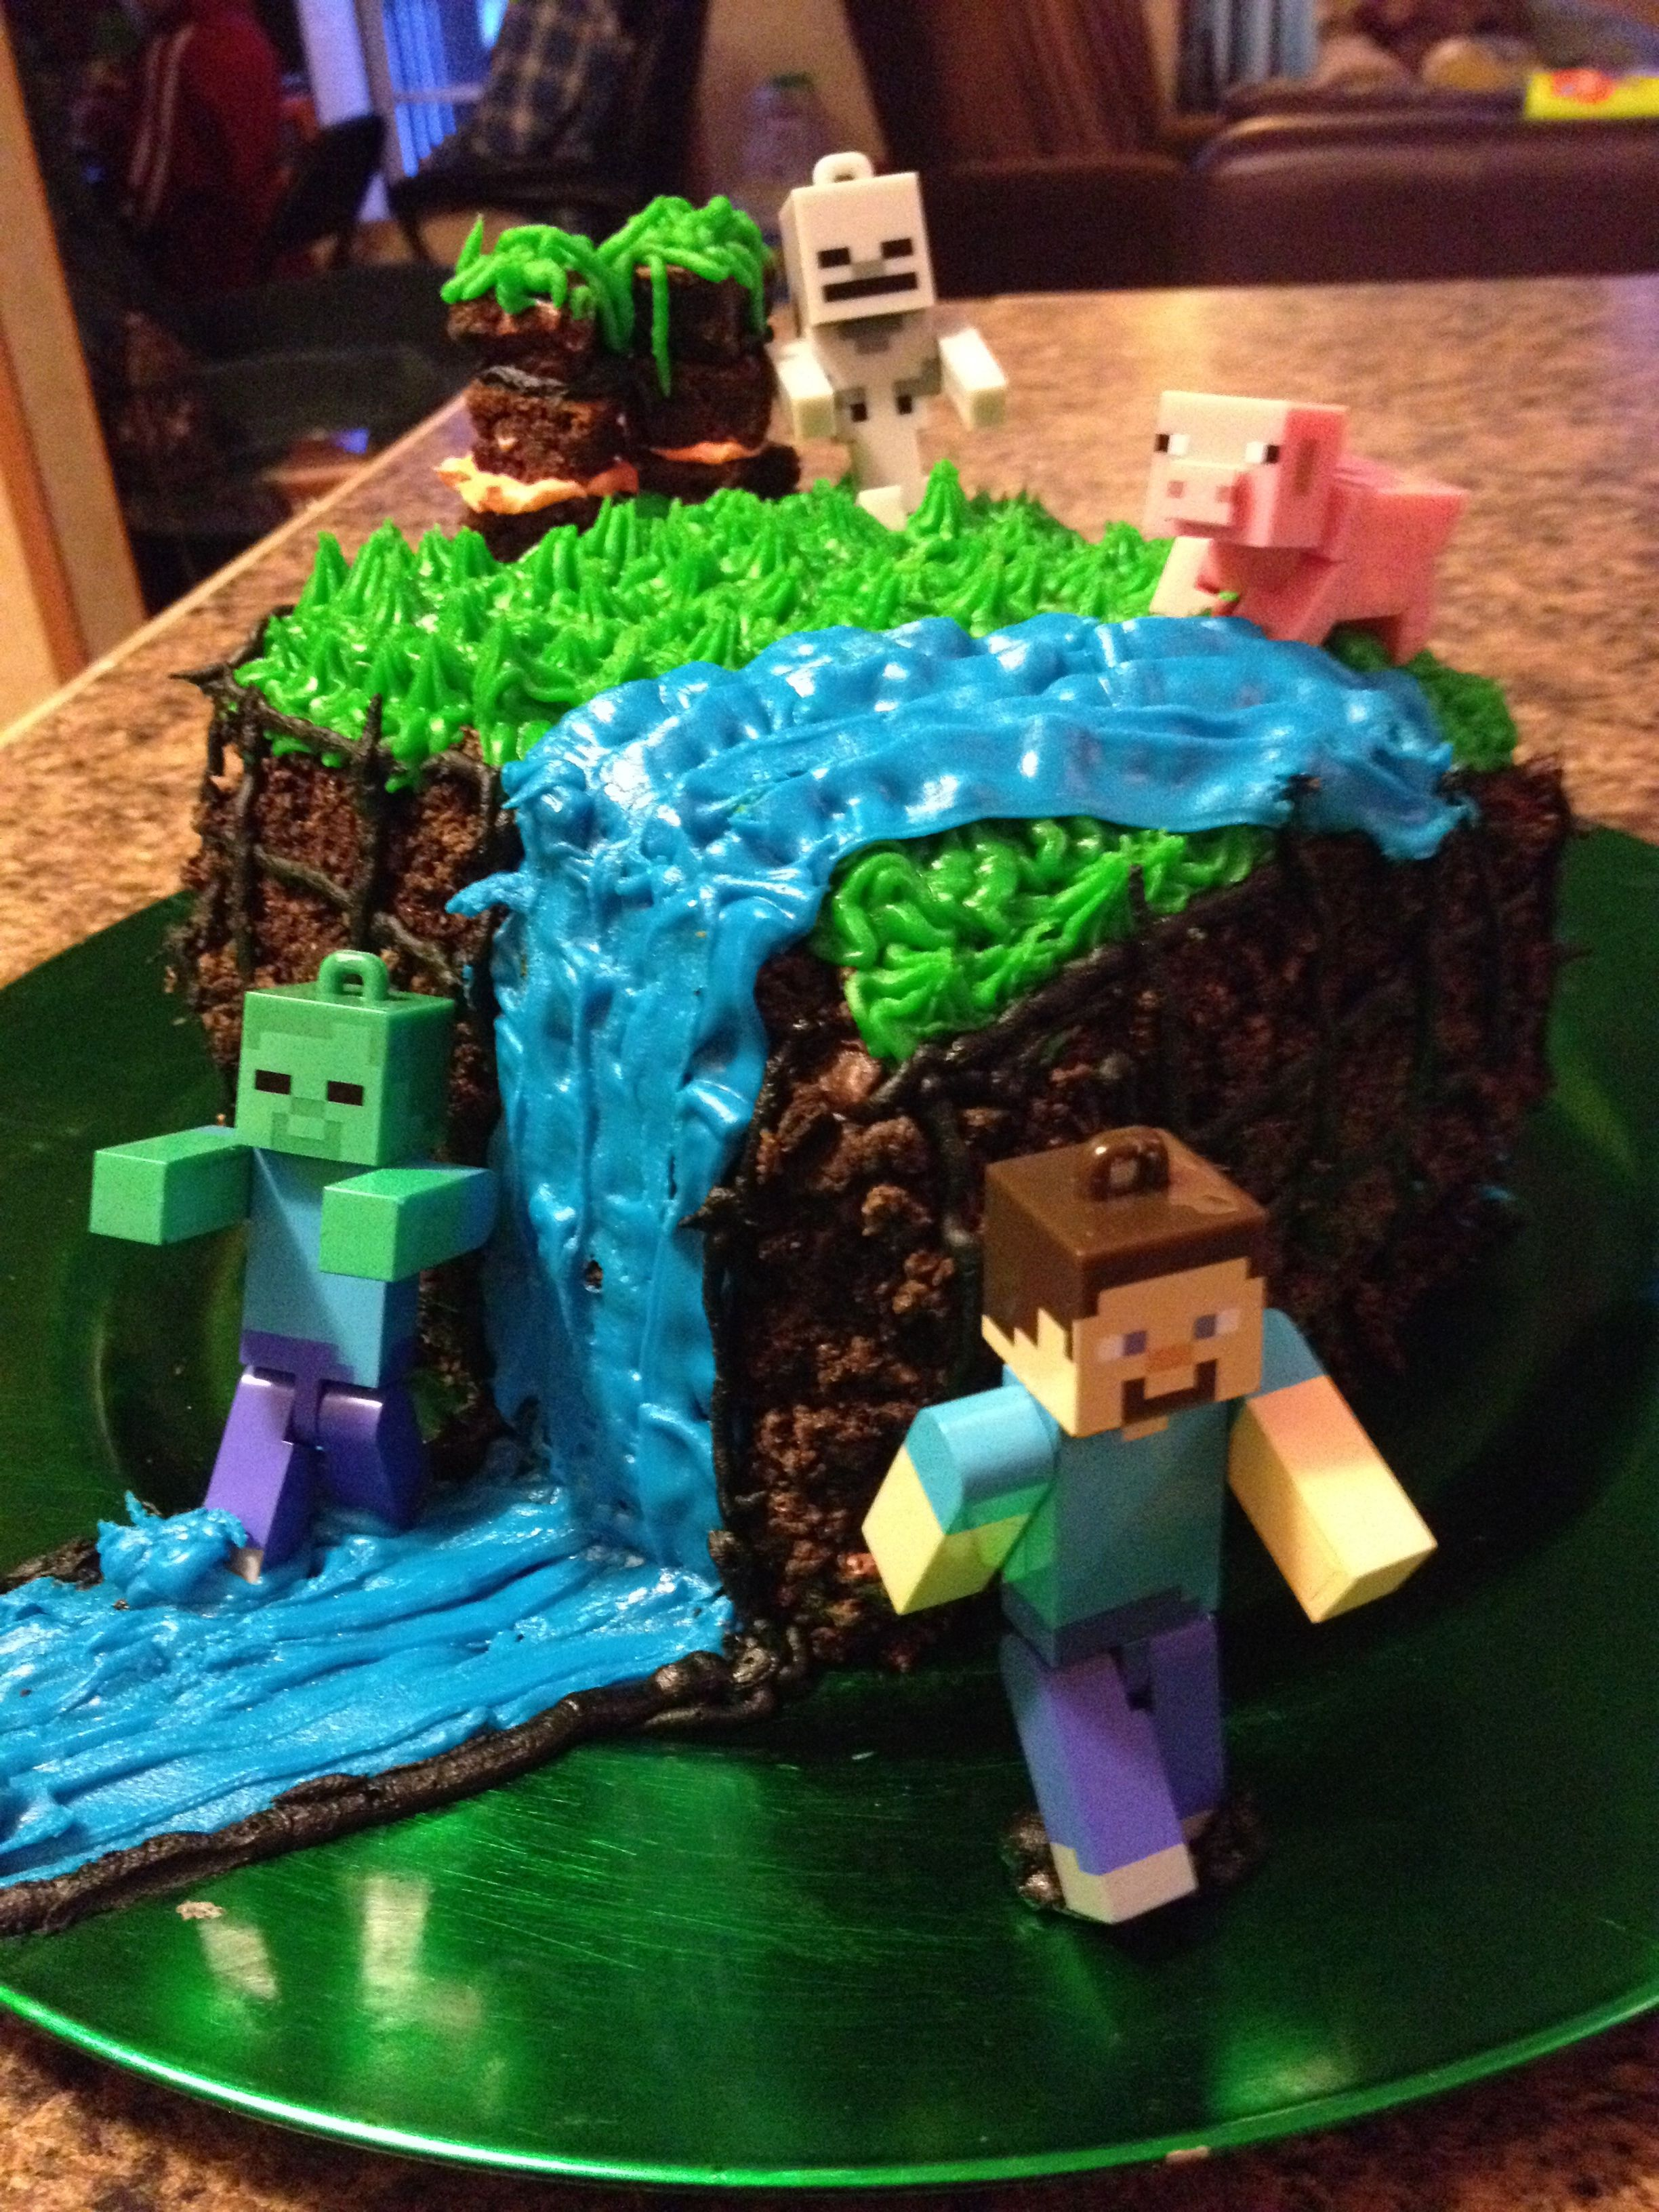 minecraft cake for my 12 year old's bday party! it is three layers